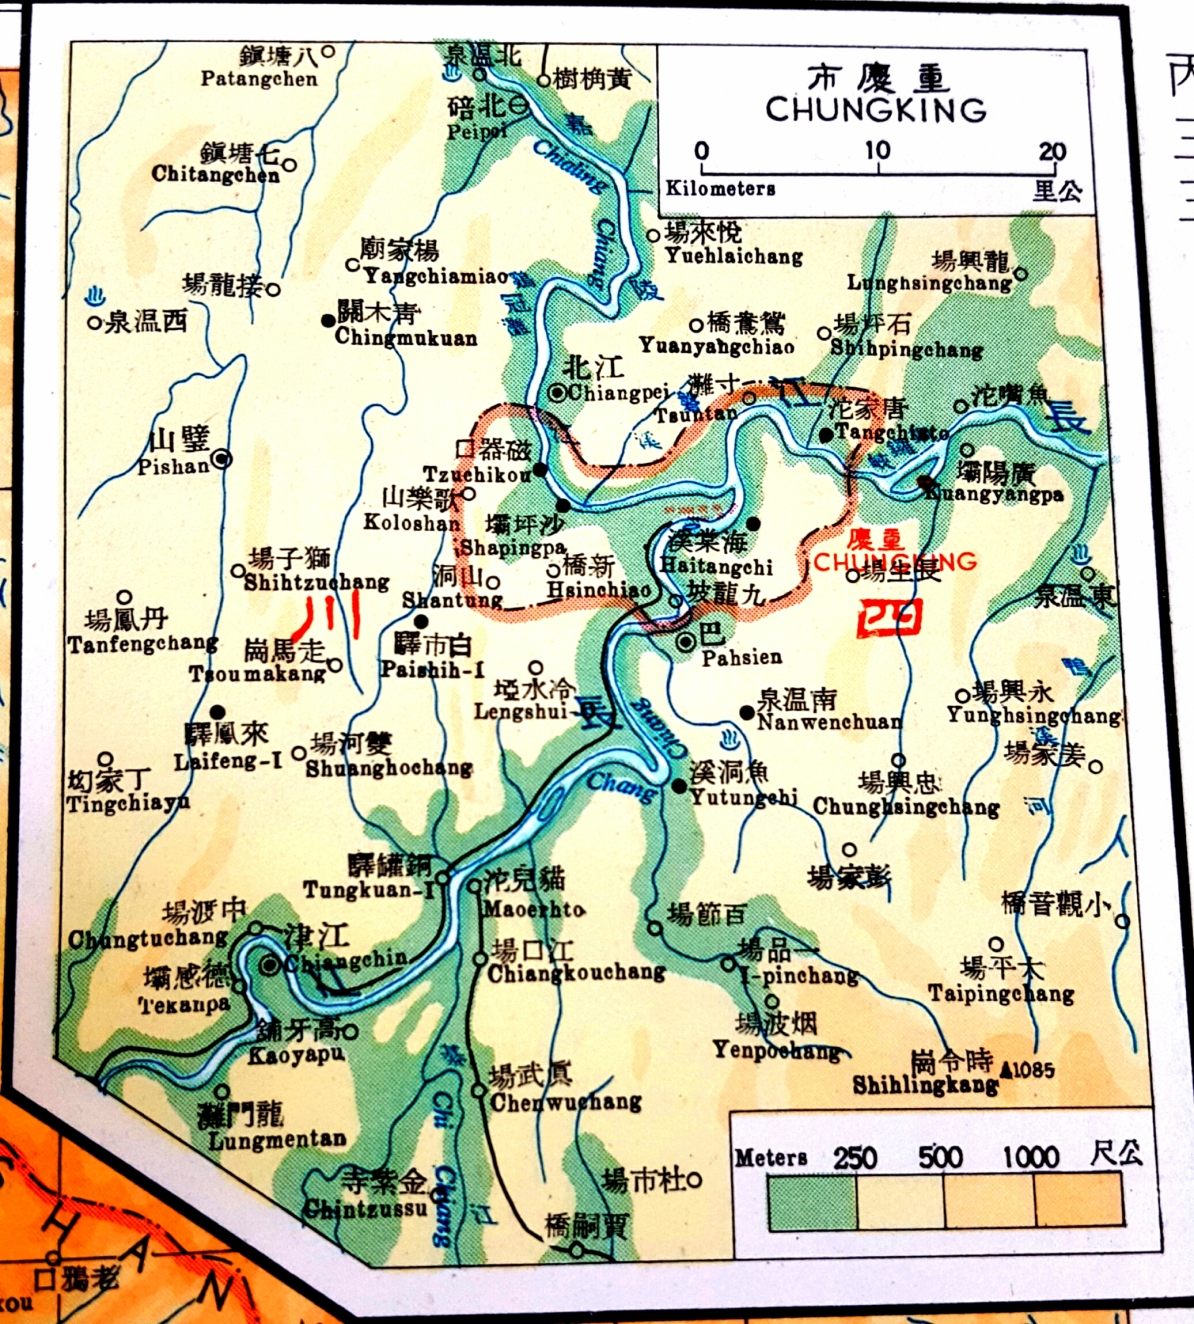 Chongqing in Republic of China Atlas